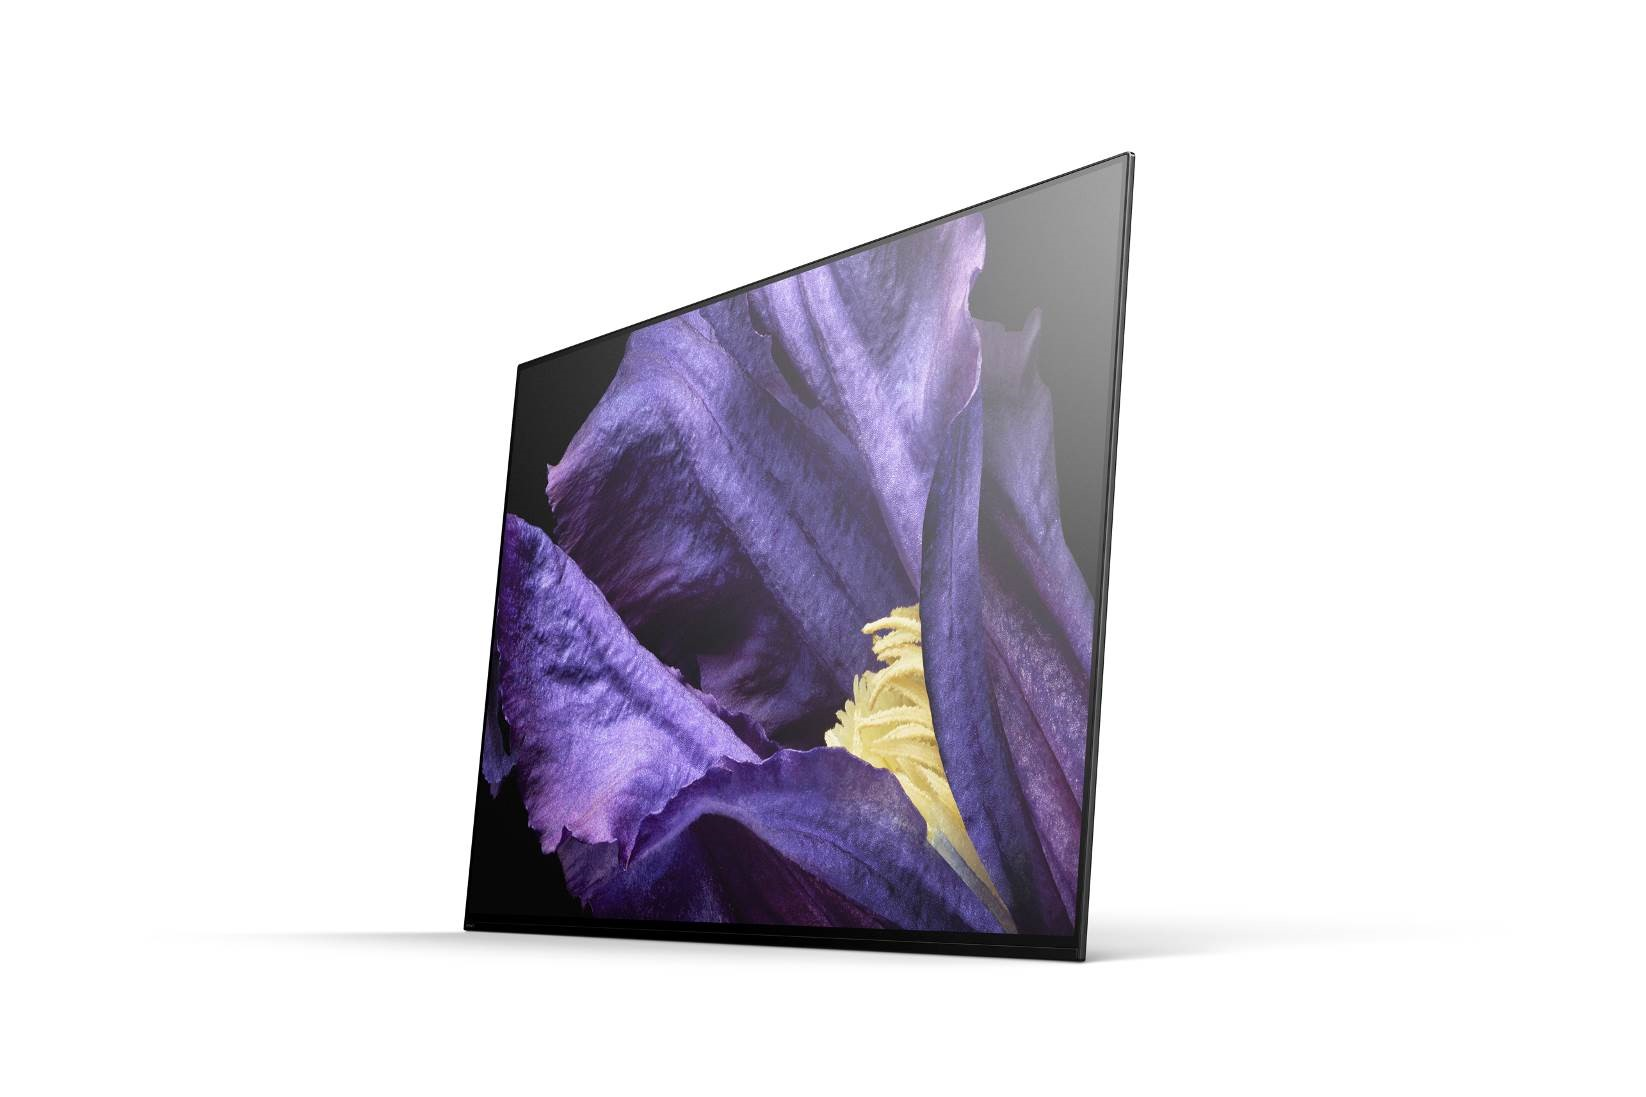 Sony Launches the MASTER Series of 4K HDR TVs with the A9F OLED and Z9F LCD as the Pinnacle of Picture Quality at Home